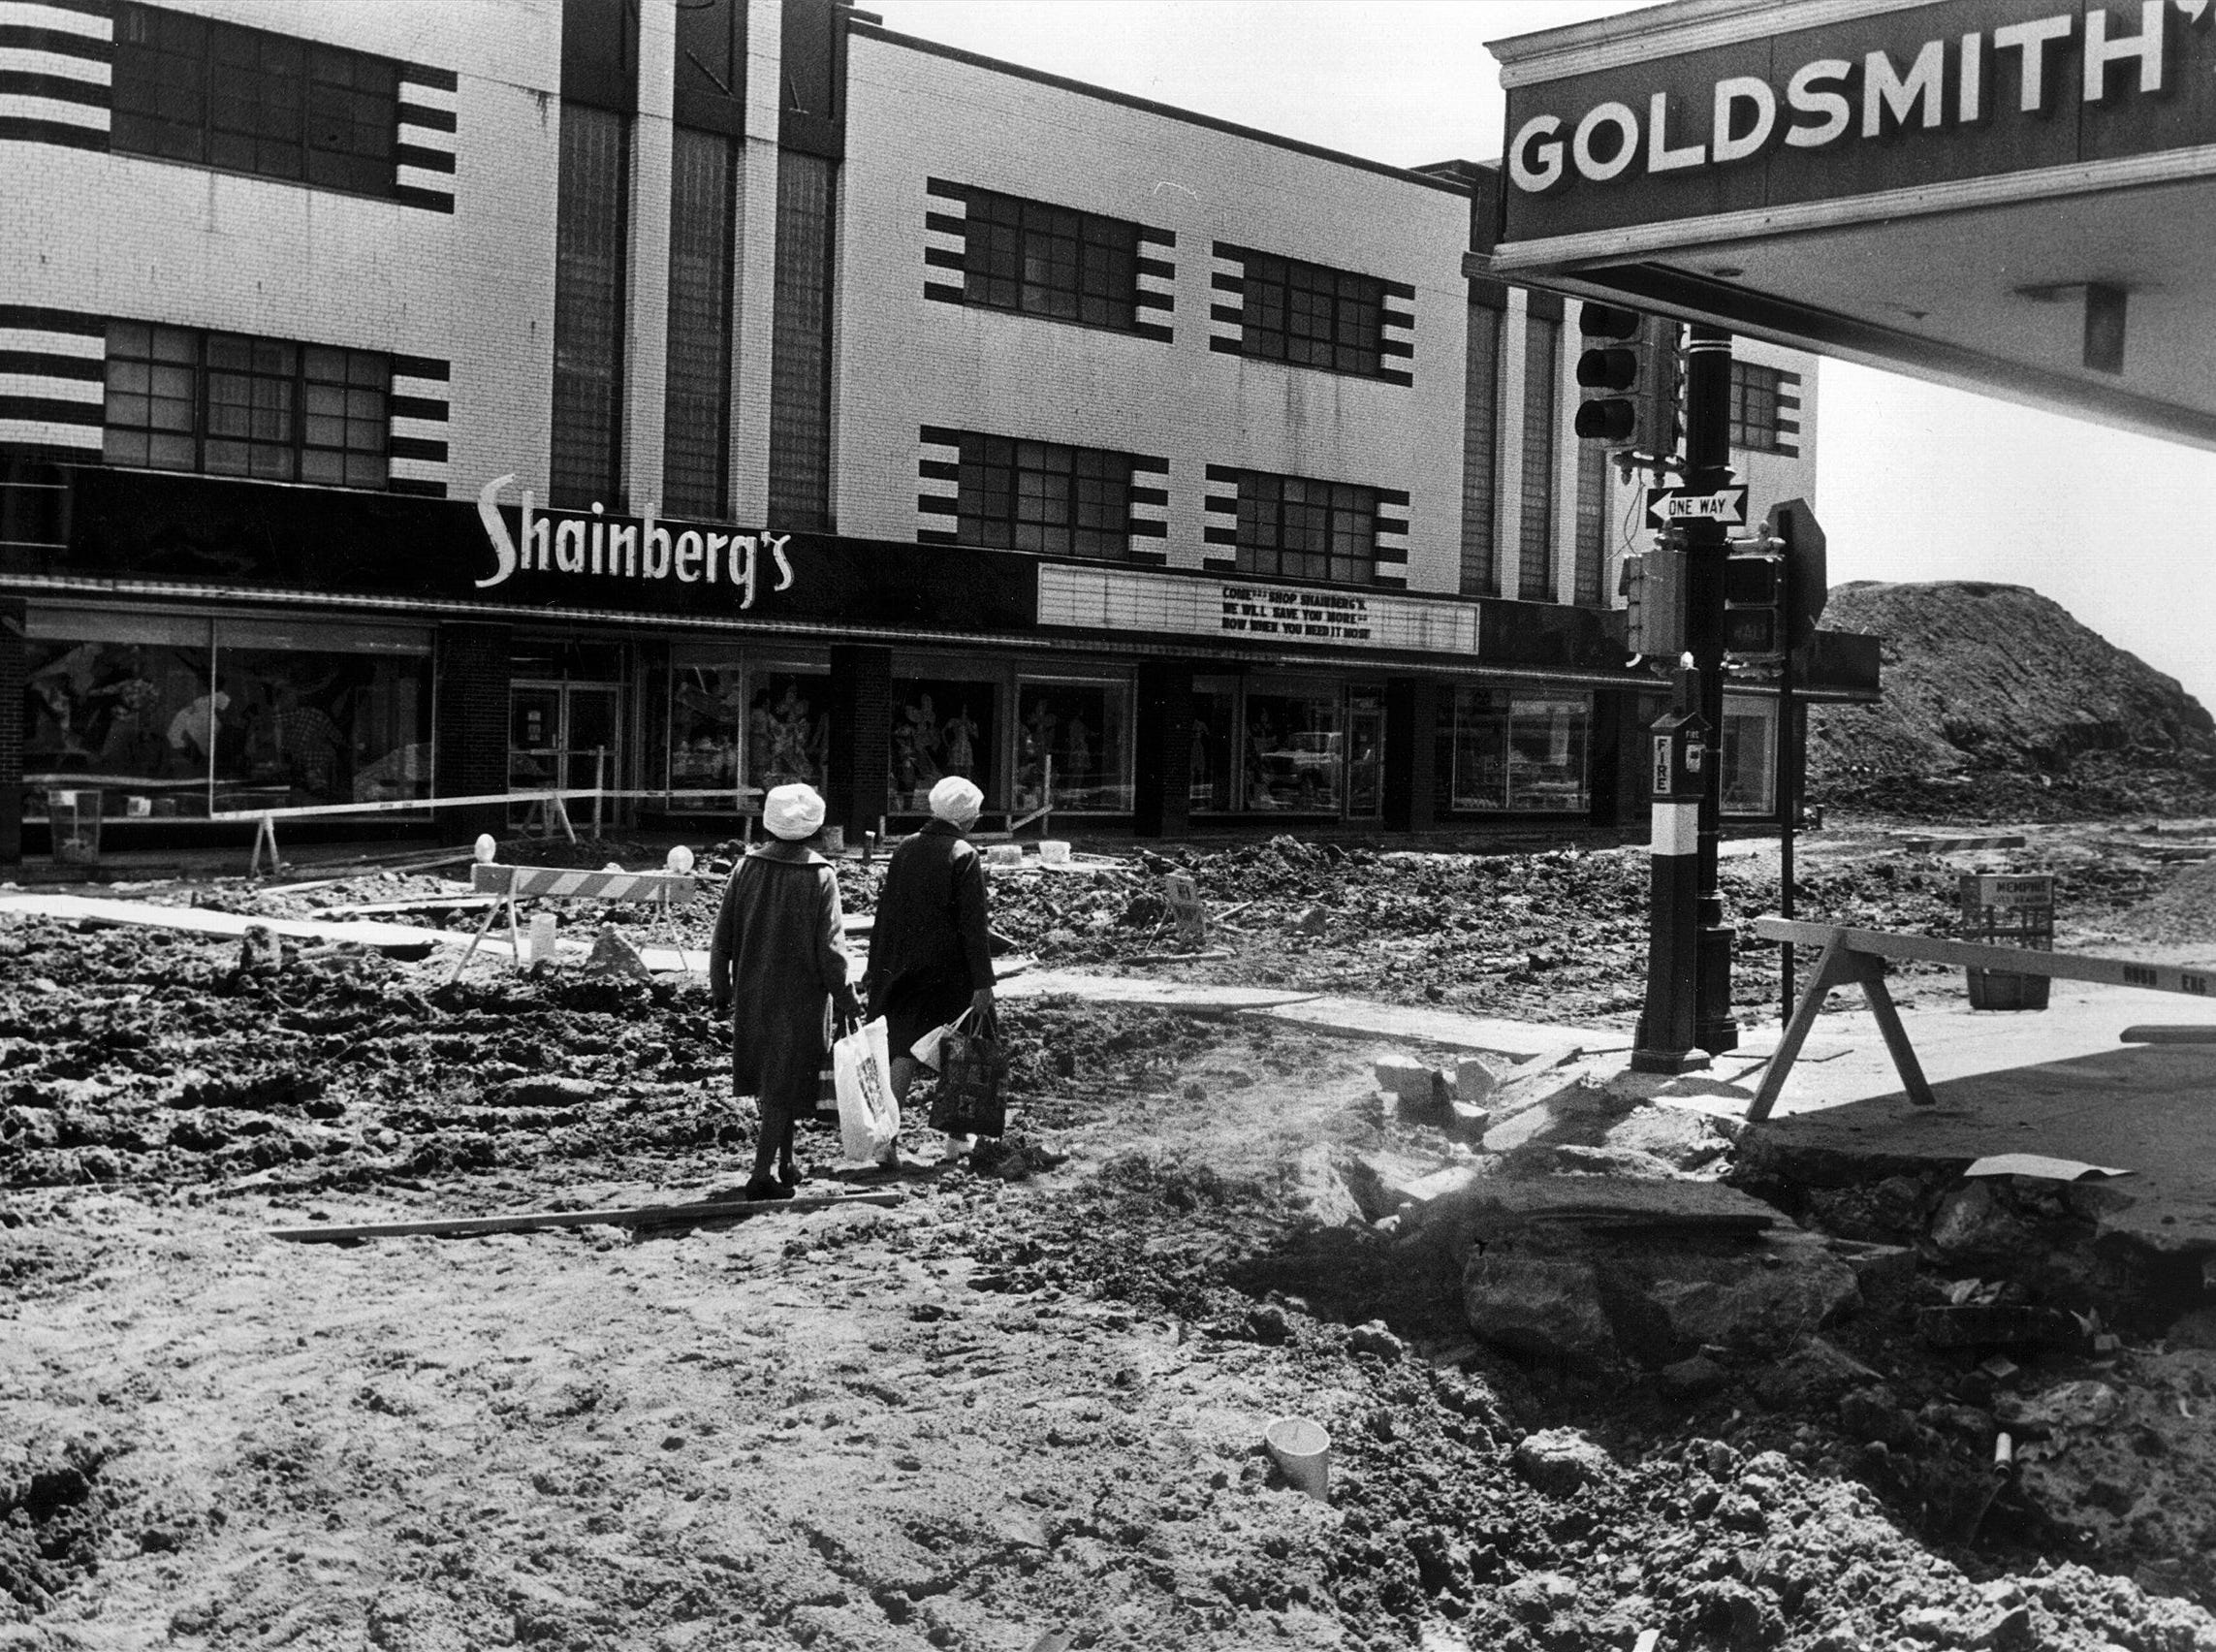 The going was not so easy for these Main Street shoppers, walking south of Gayoso at Goldsmith's and Shainberg's in April 1975. The Mid-America Mall was under construction and the once busy street was more like a battle zone than a street during construction.